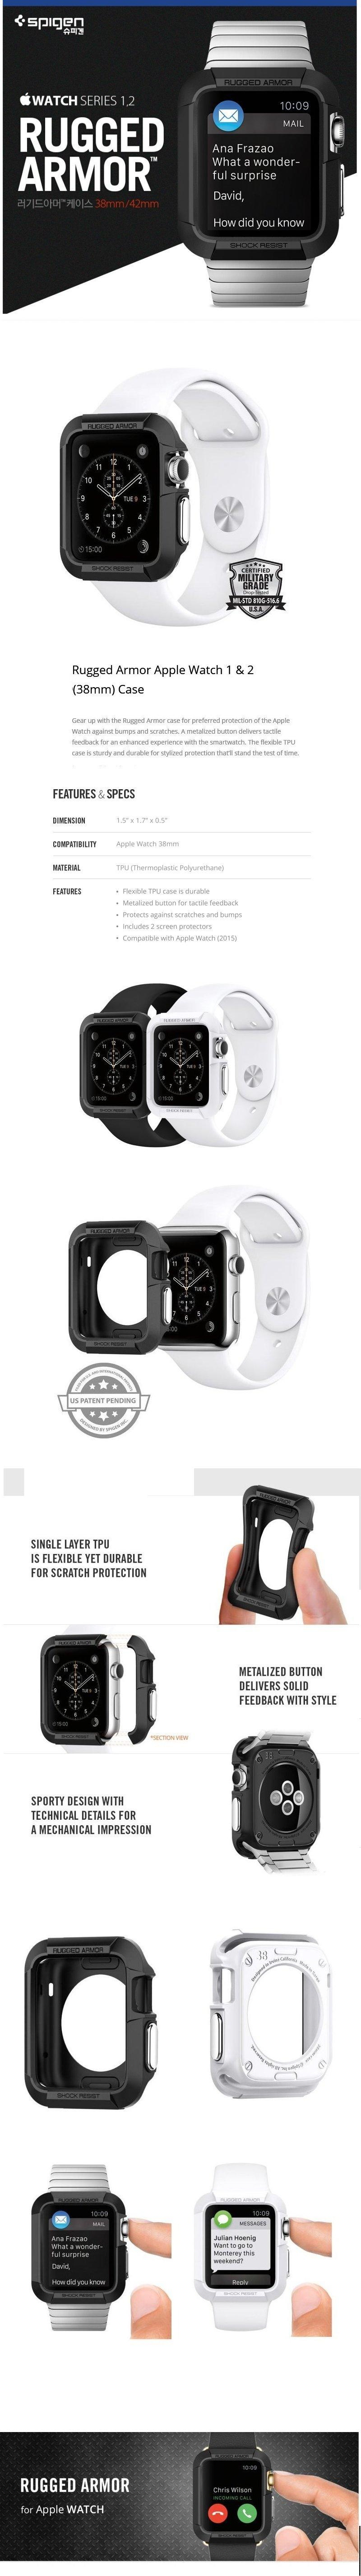 Specifications of Spigen Rugged Armor Apple Watch Series 1 & 2 (38mm) Cases (White / Black) 100% Original - intl